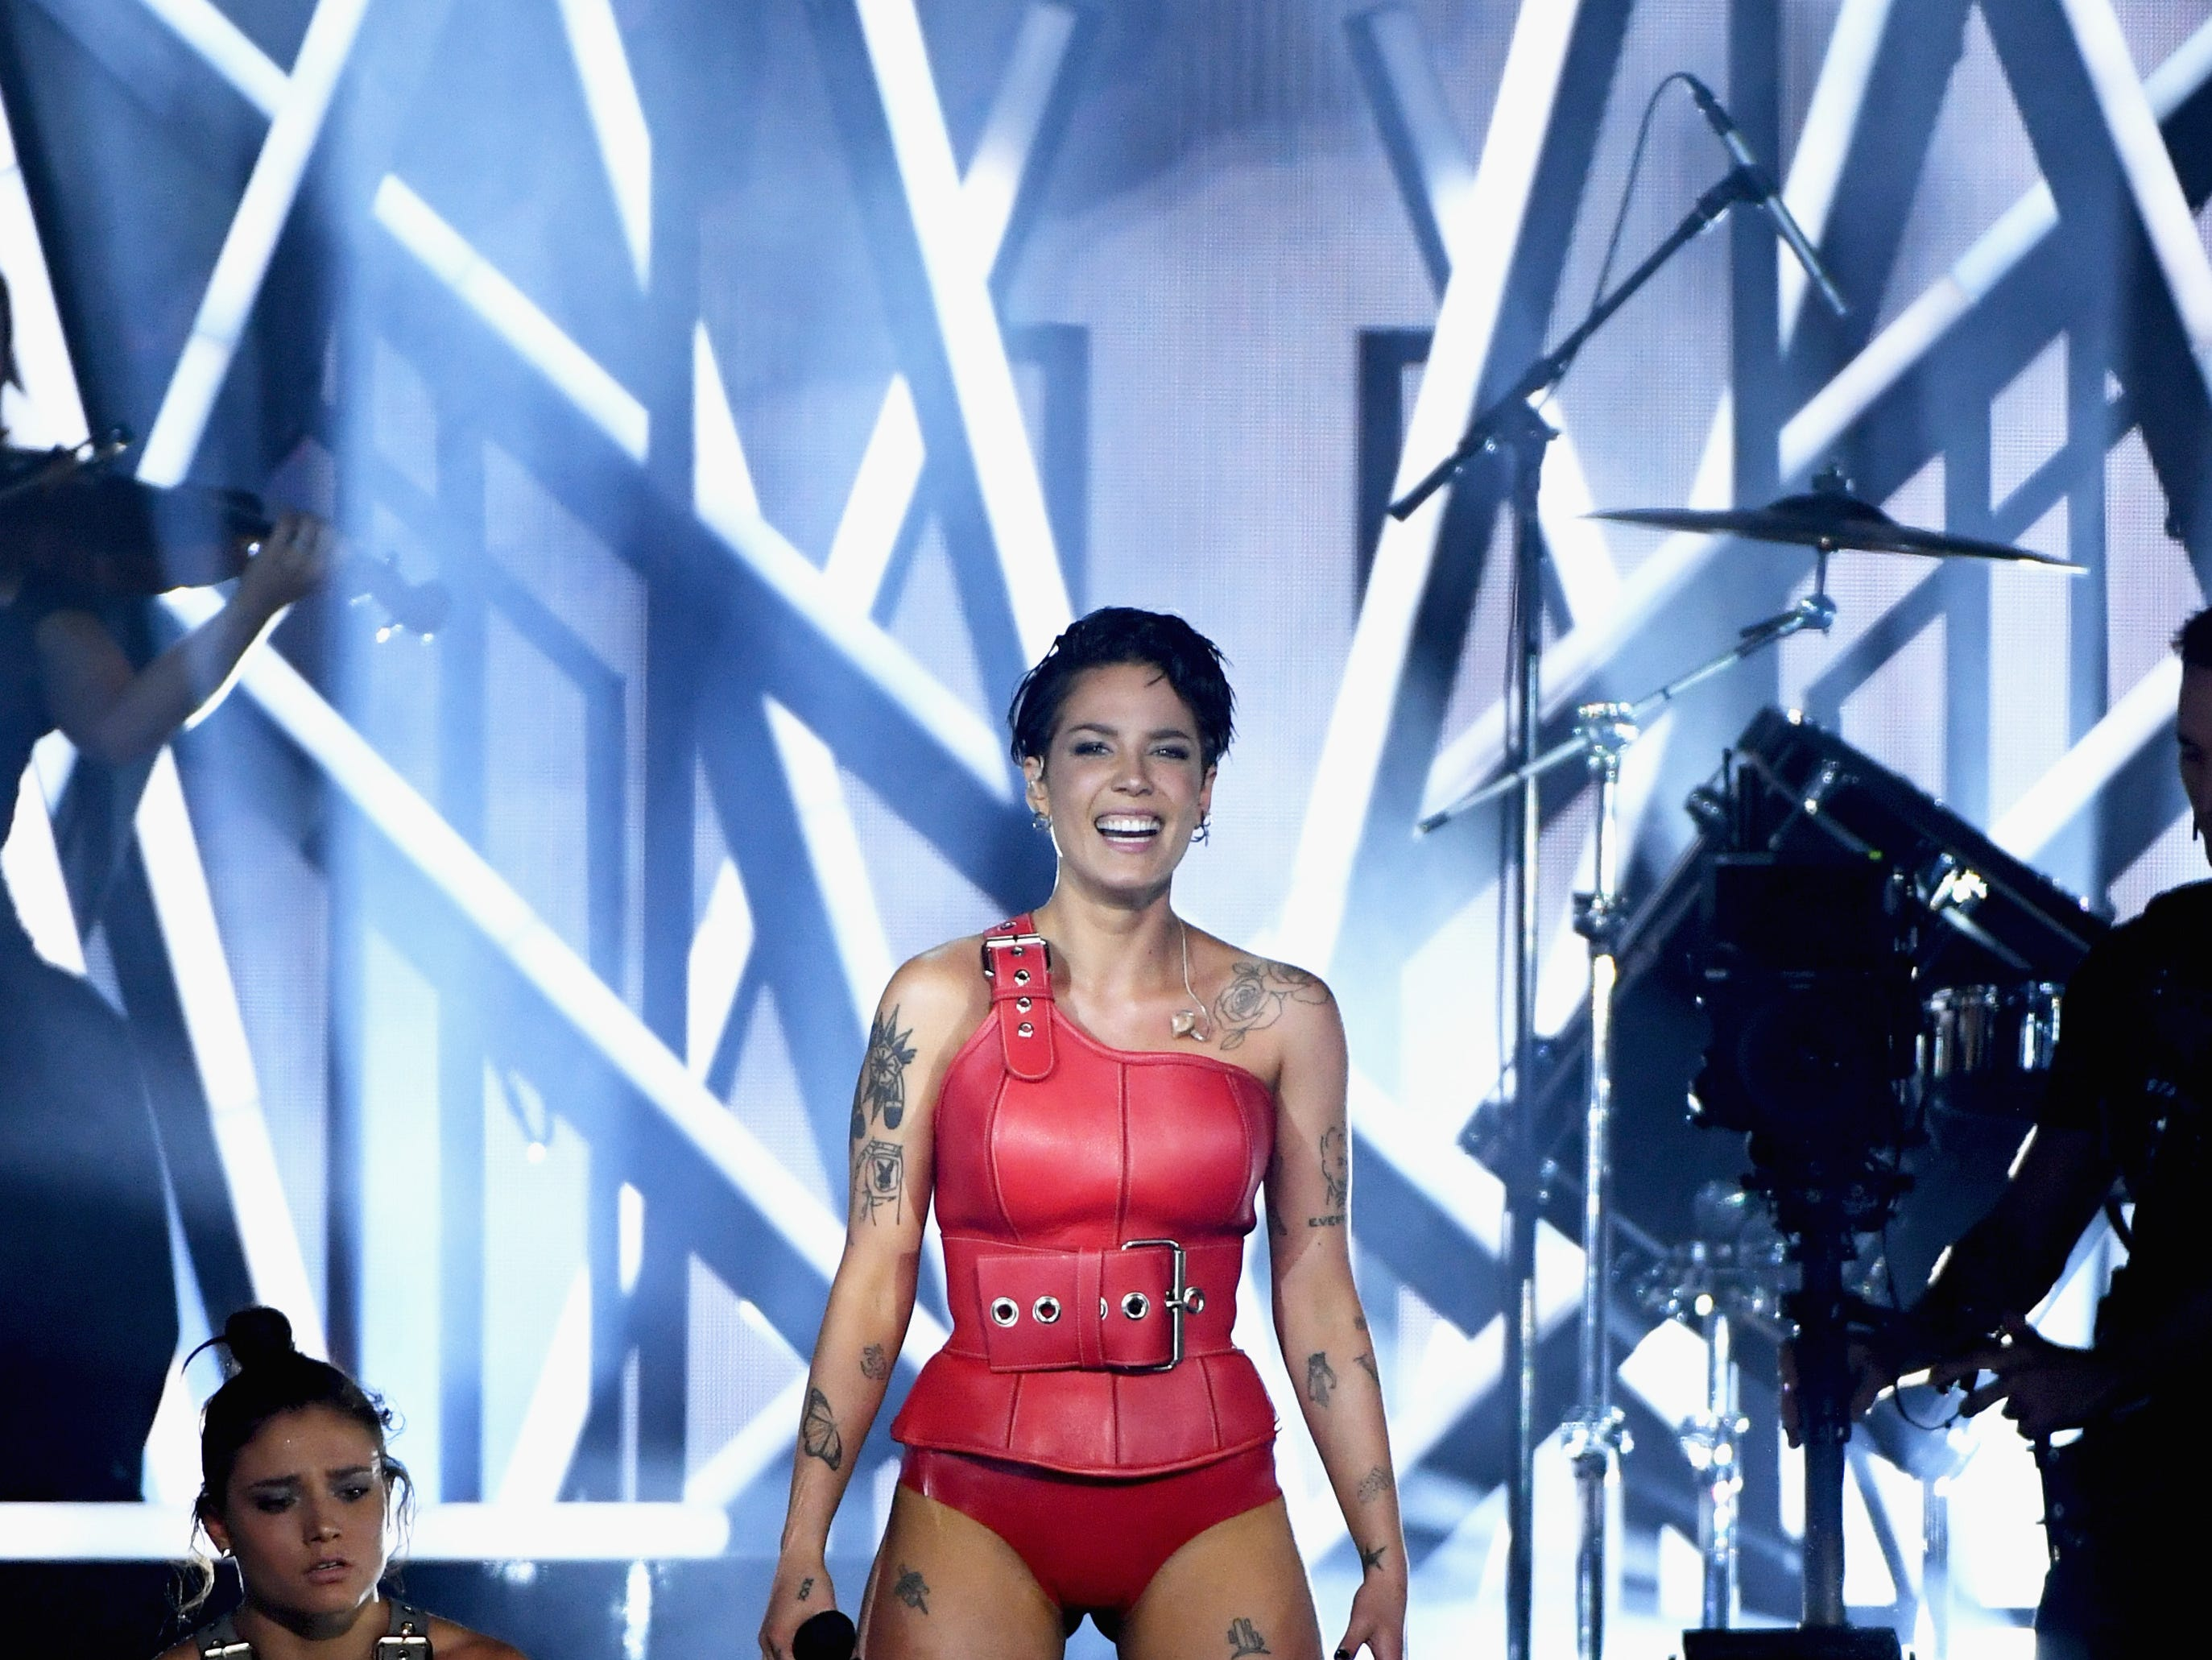 Halsey performs onstage during the 2019 Billboard Music Awards at MGM Grand Garden Arena on May 1, 2019 in Las Vegas, Nevada.